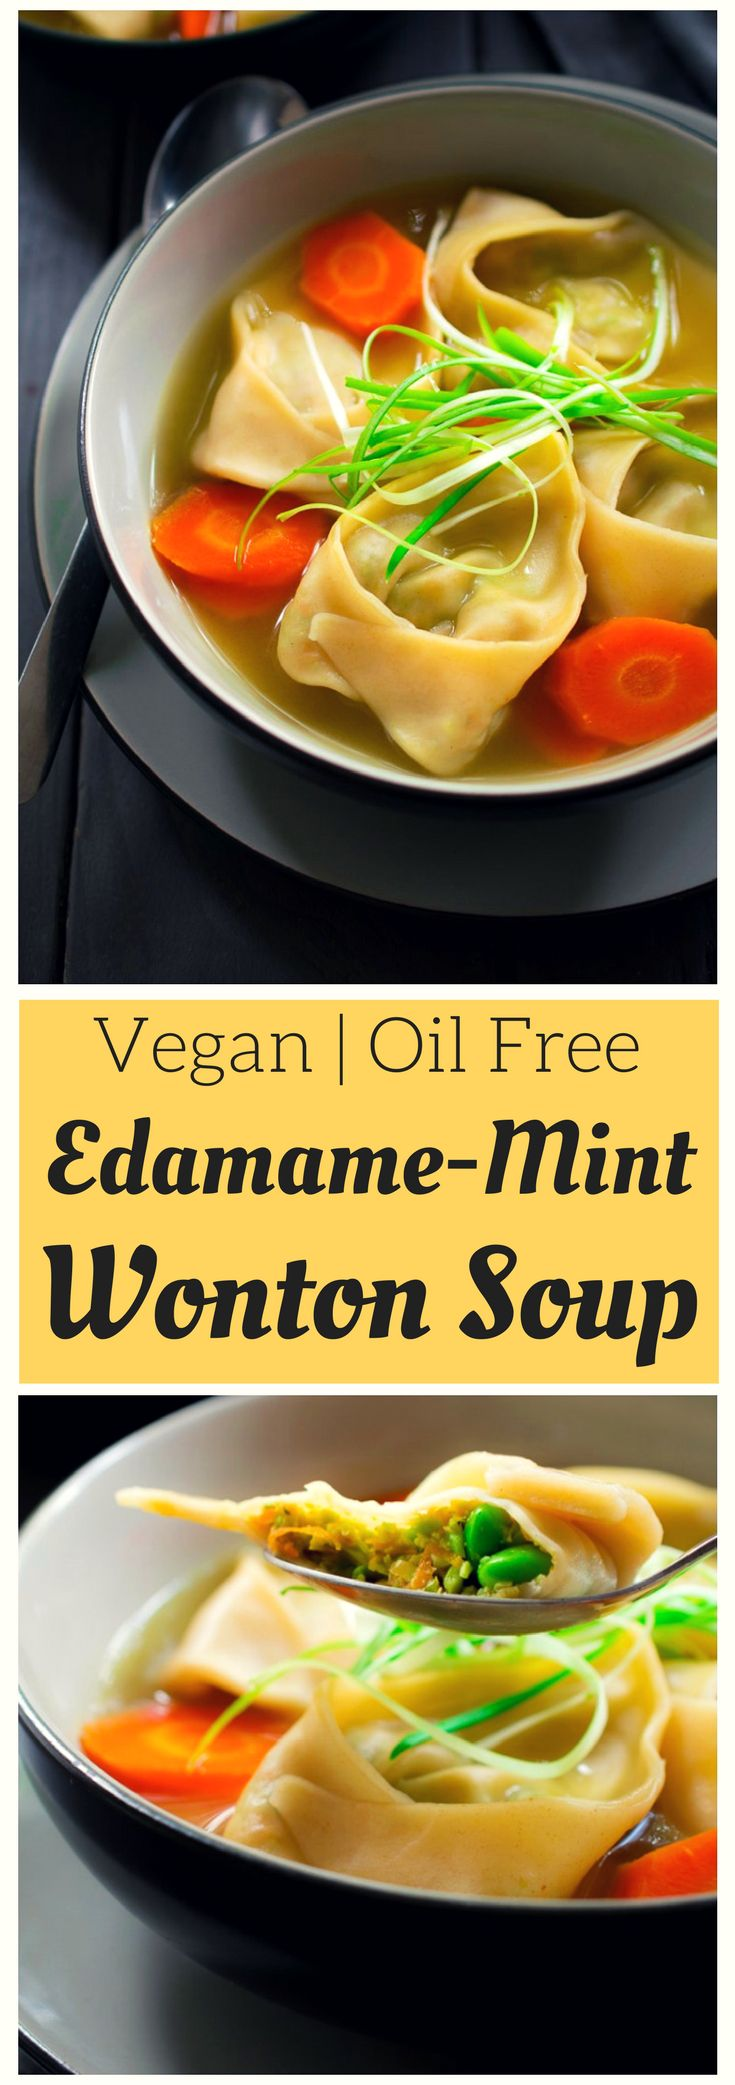 This vegan wonton soup is a steaming and comforting bowl of deliciousness. The vegan wontons are stuffed with an unusual but tasty combination of edamame, carrot and mint, and are floating in a simple vegetable broth to let all those yummy flavours shine through. Served alone as an appetizer or along with rice for a hearty lunch or dinner, this vegan wonton soup is all you need to warm you up on a chilly day!